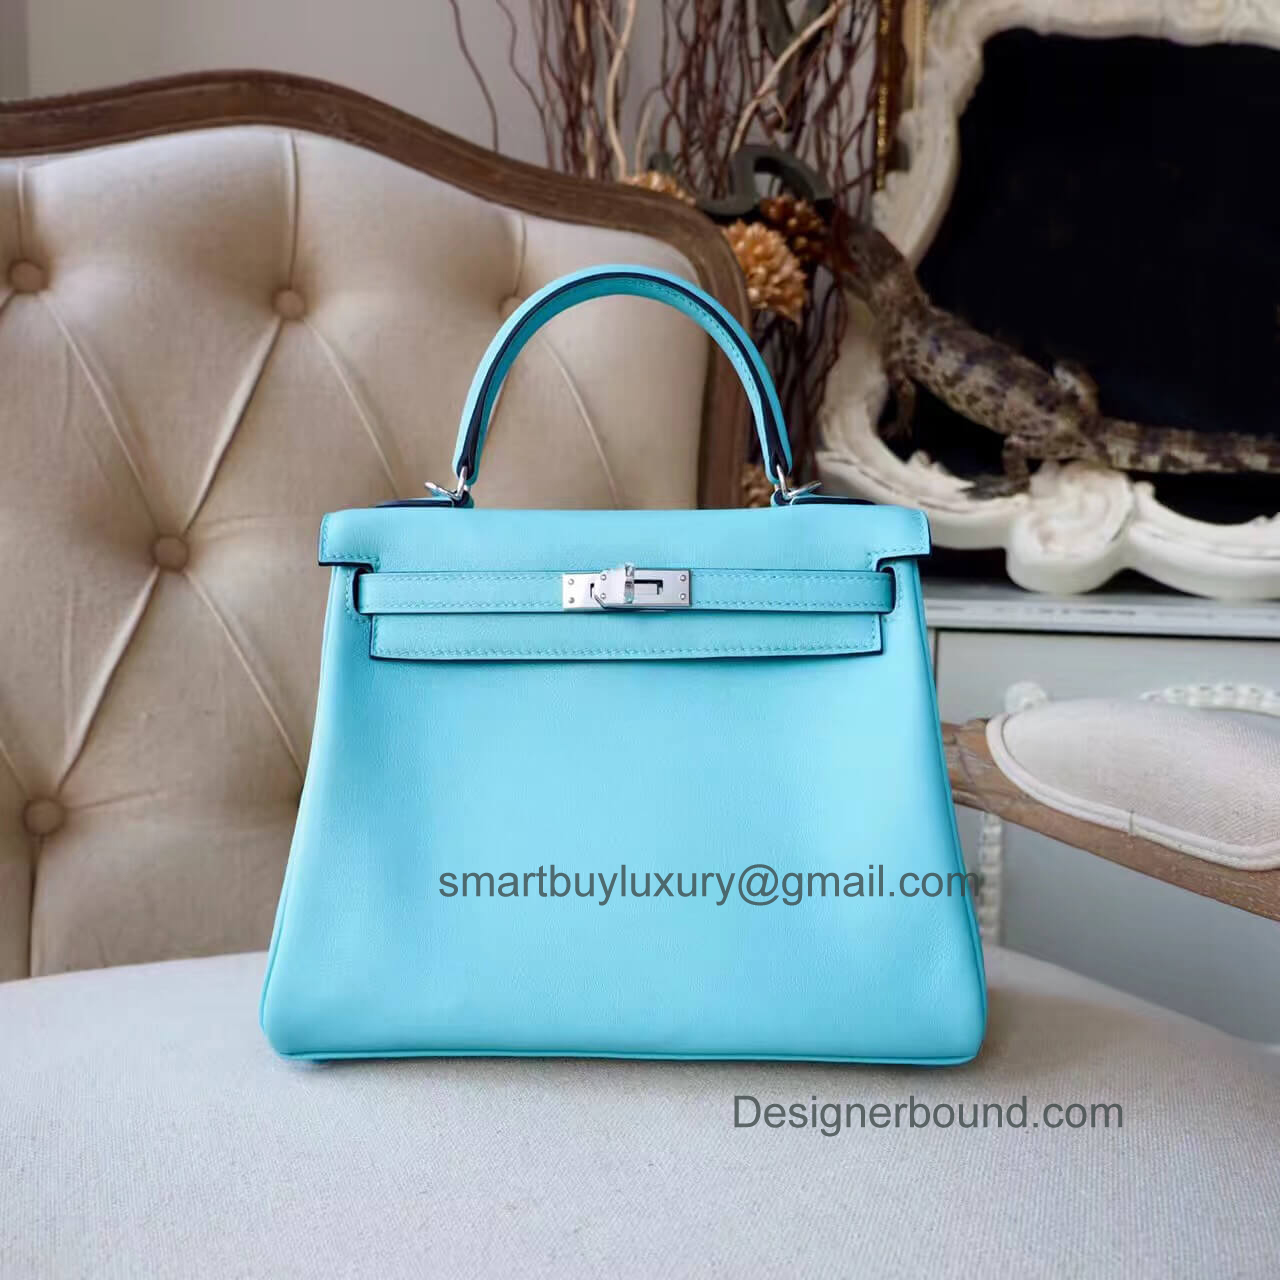 Hermes Kelly 25 Bag in 3p Blue Atoll Swift PHW